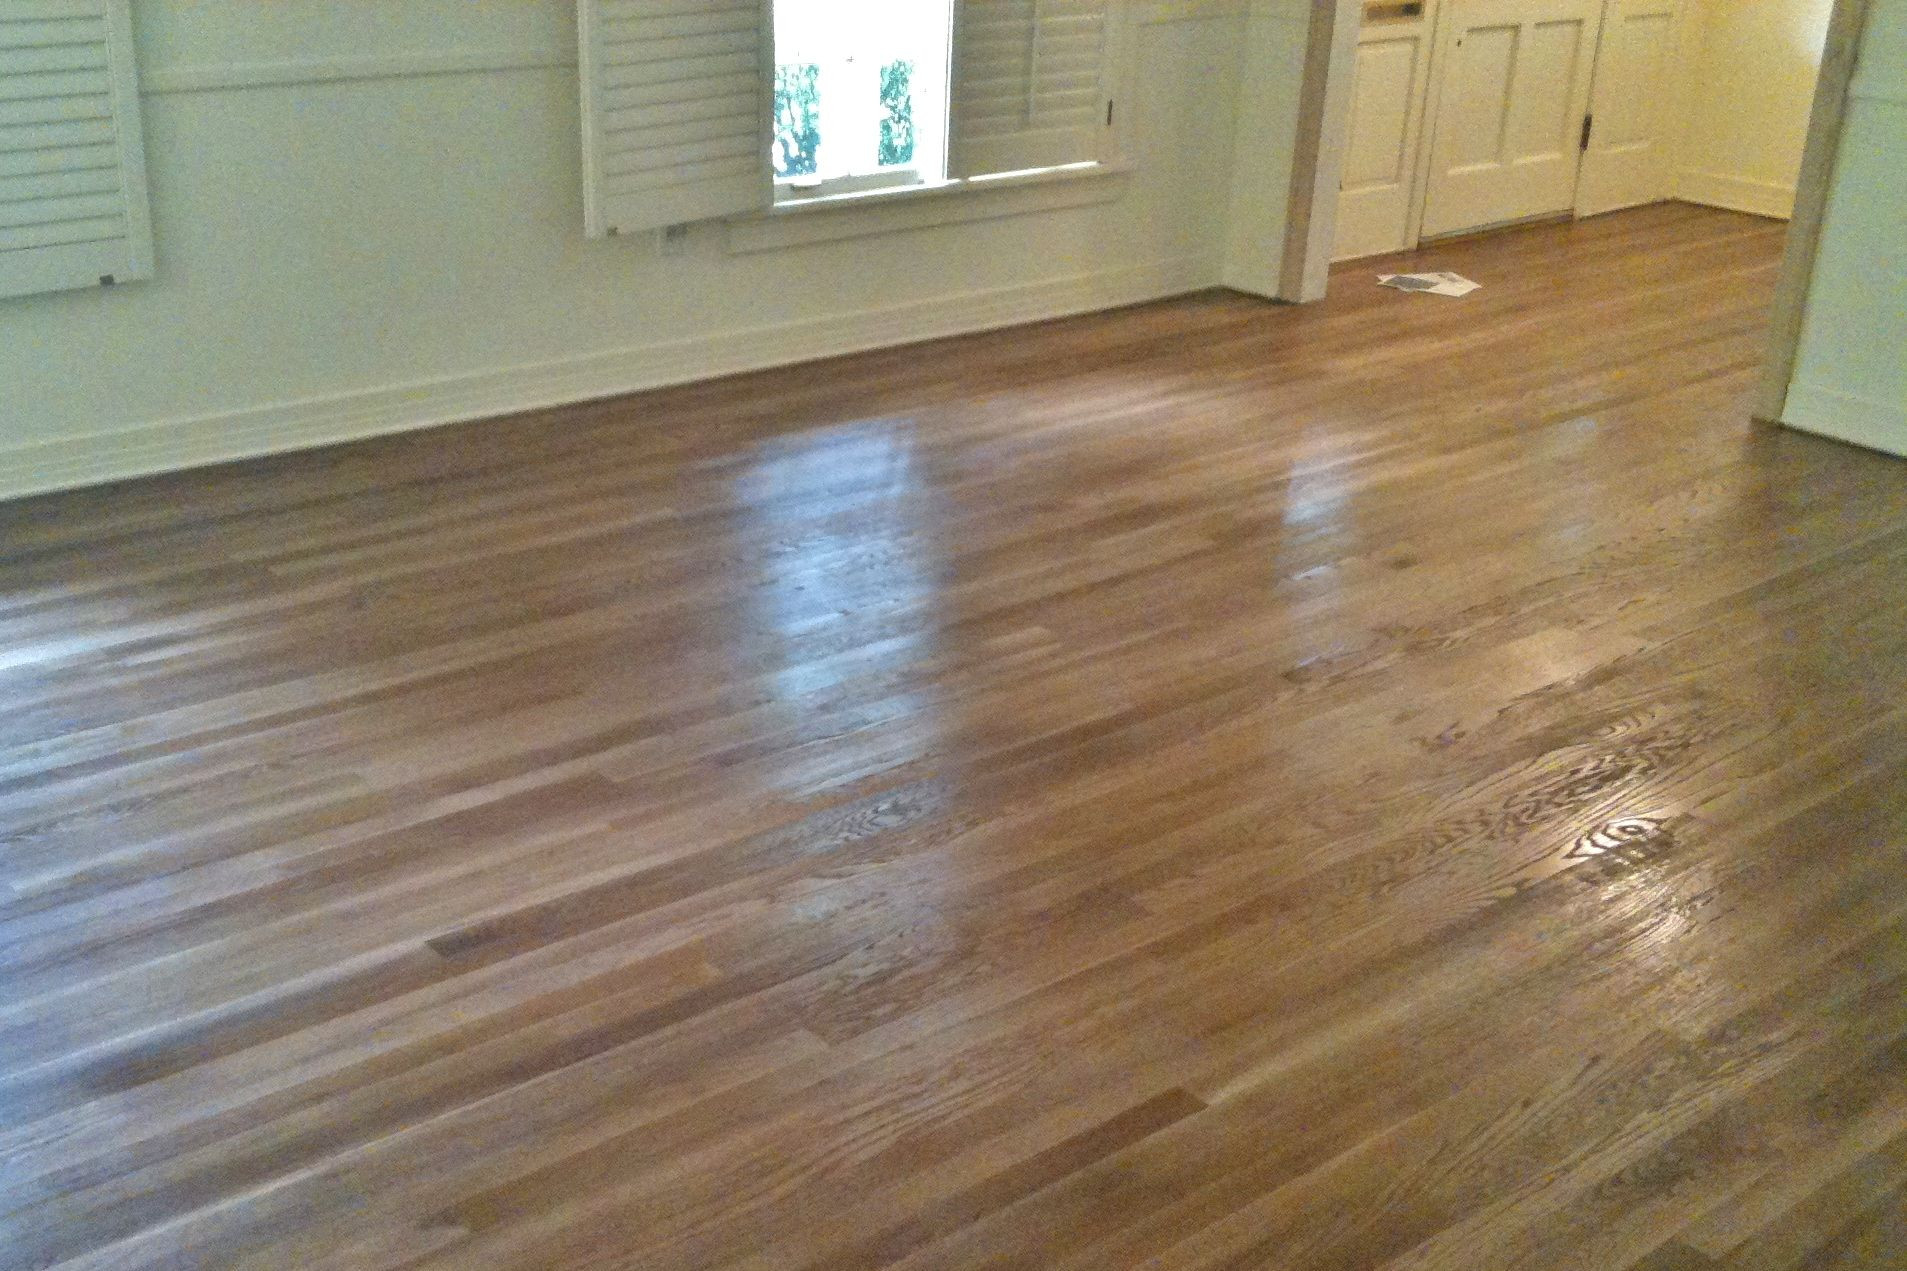 hardwood floor refinishing stamford ct of oak meet special walnut home design pinterest flooring intended for minwax special walnut stain on oak hardwood floors walnut hardwood flooring refinishing hardwood